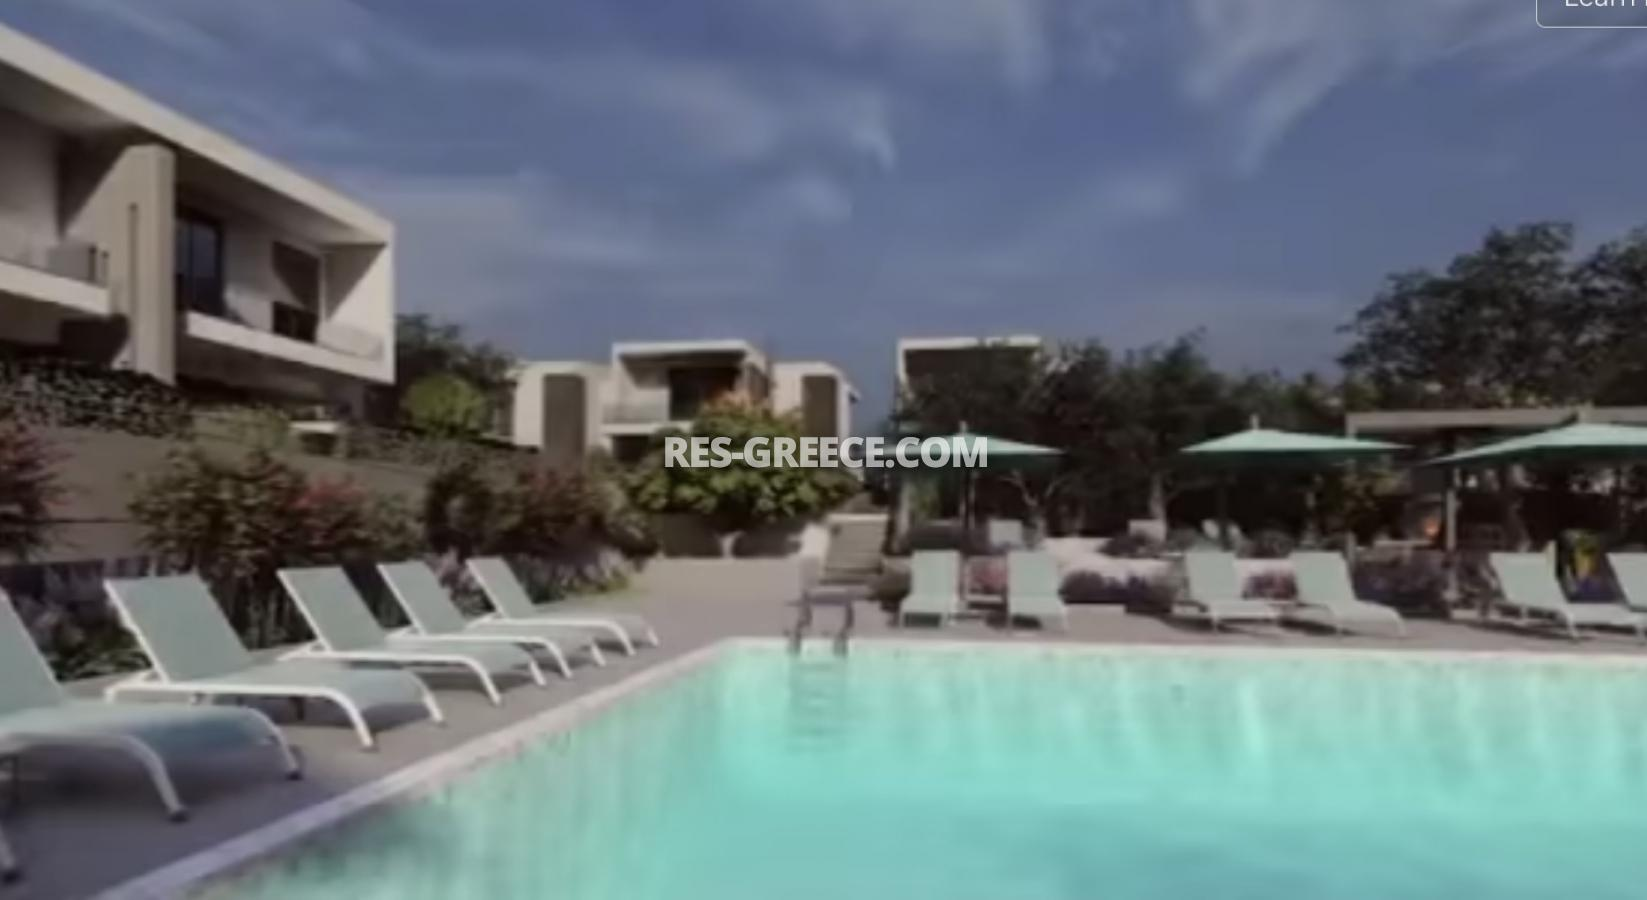 Anasa townhouses, Halkidiki-Sithonia, Greece - cottages in a new complex with the pool - Photo 14